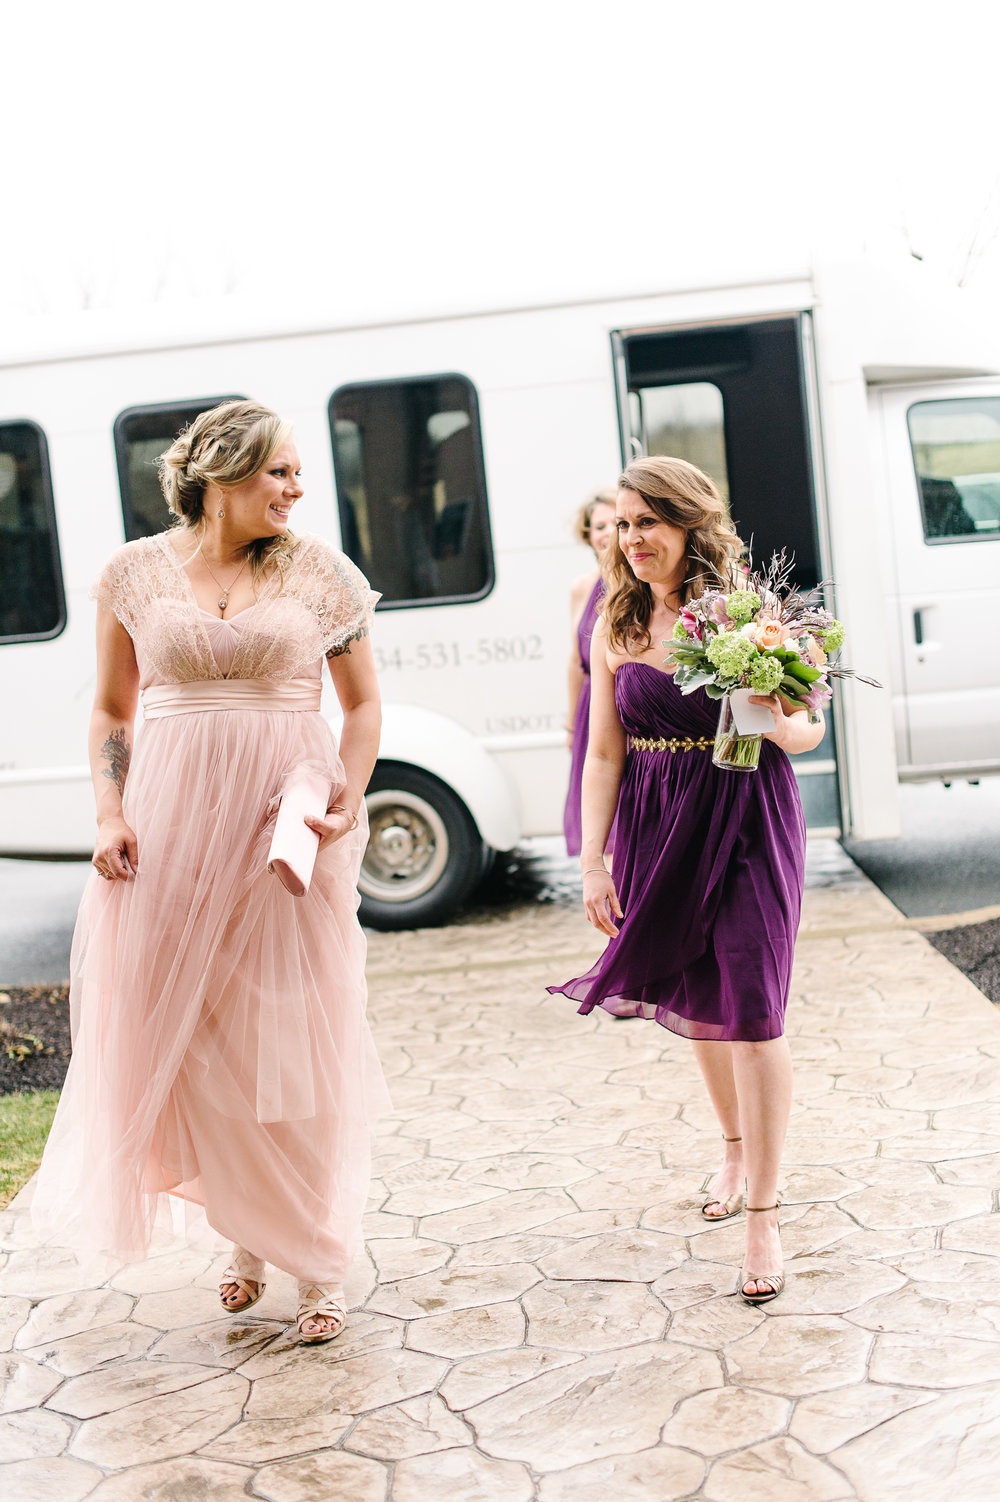 Bridal Party Wedding Transportation